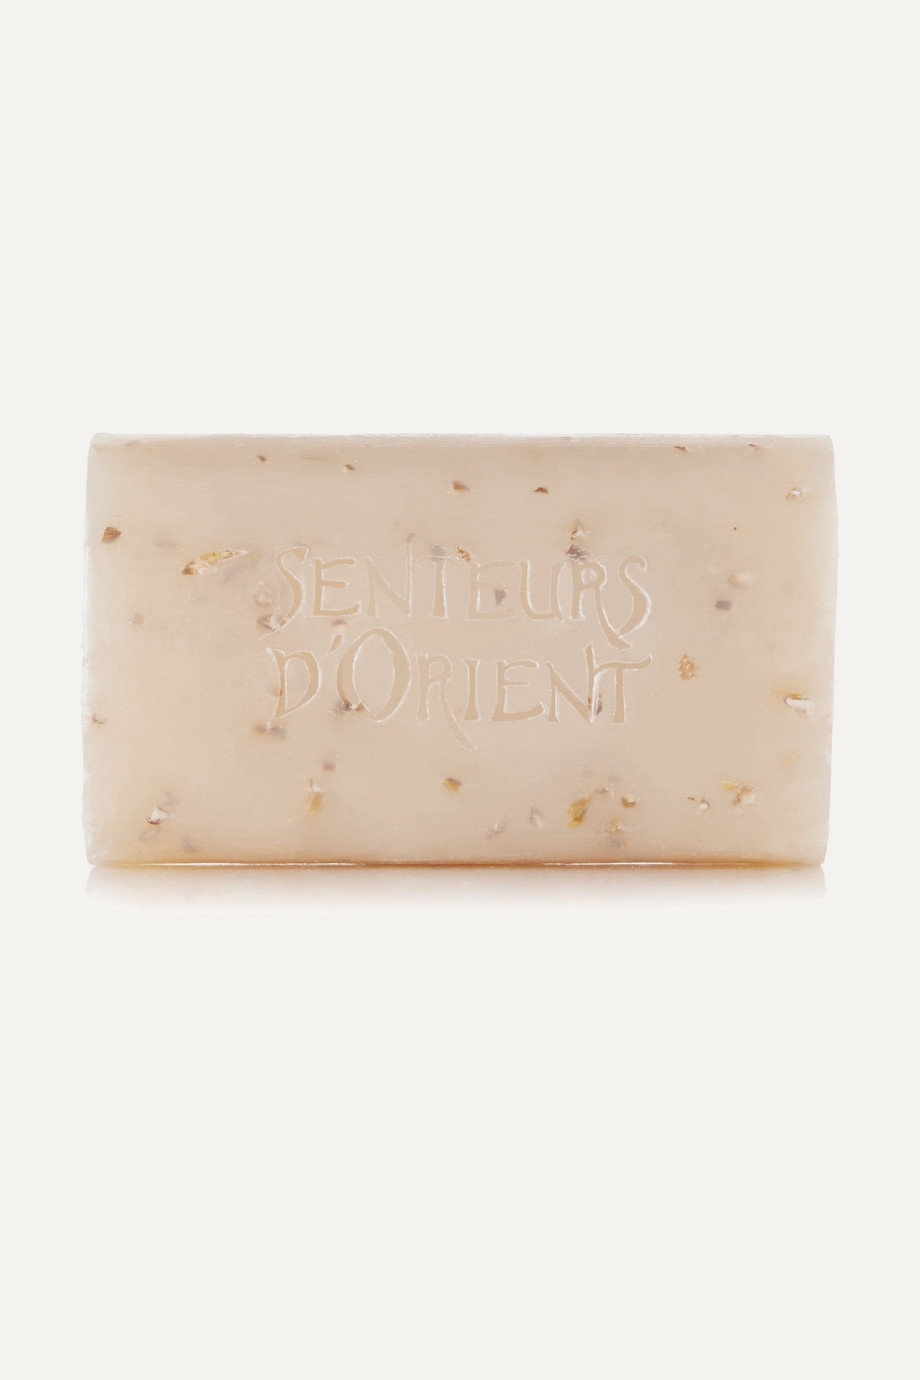 SENTEURS D'ORIENT + NET SUSTAIN Rough Cut Bath Soap - Almond Exfoliant, 210g